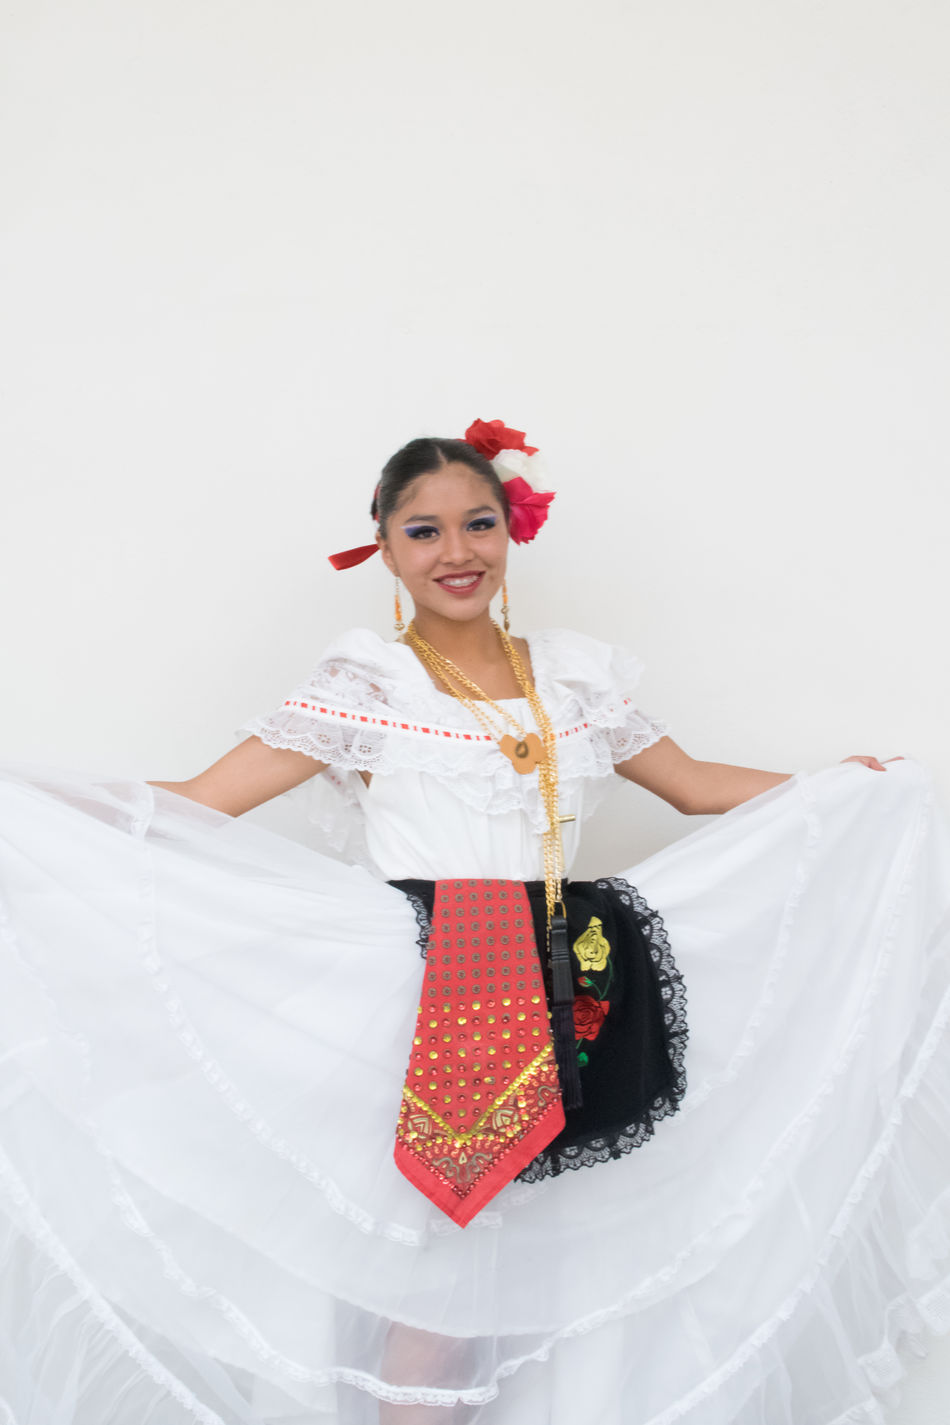 Beautiful Woman Front View Full Length Happiness Jarocho Life Events Lifestyles Looking At Camera One Person People Portrait Real People Smiling Son Jarocho Standing Studio Shot Toothy Smile Traditional Clothing Verano Young Adult Young Women